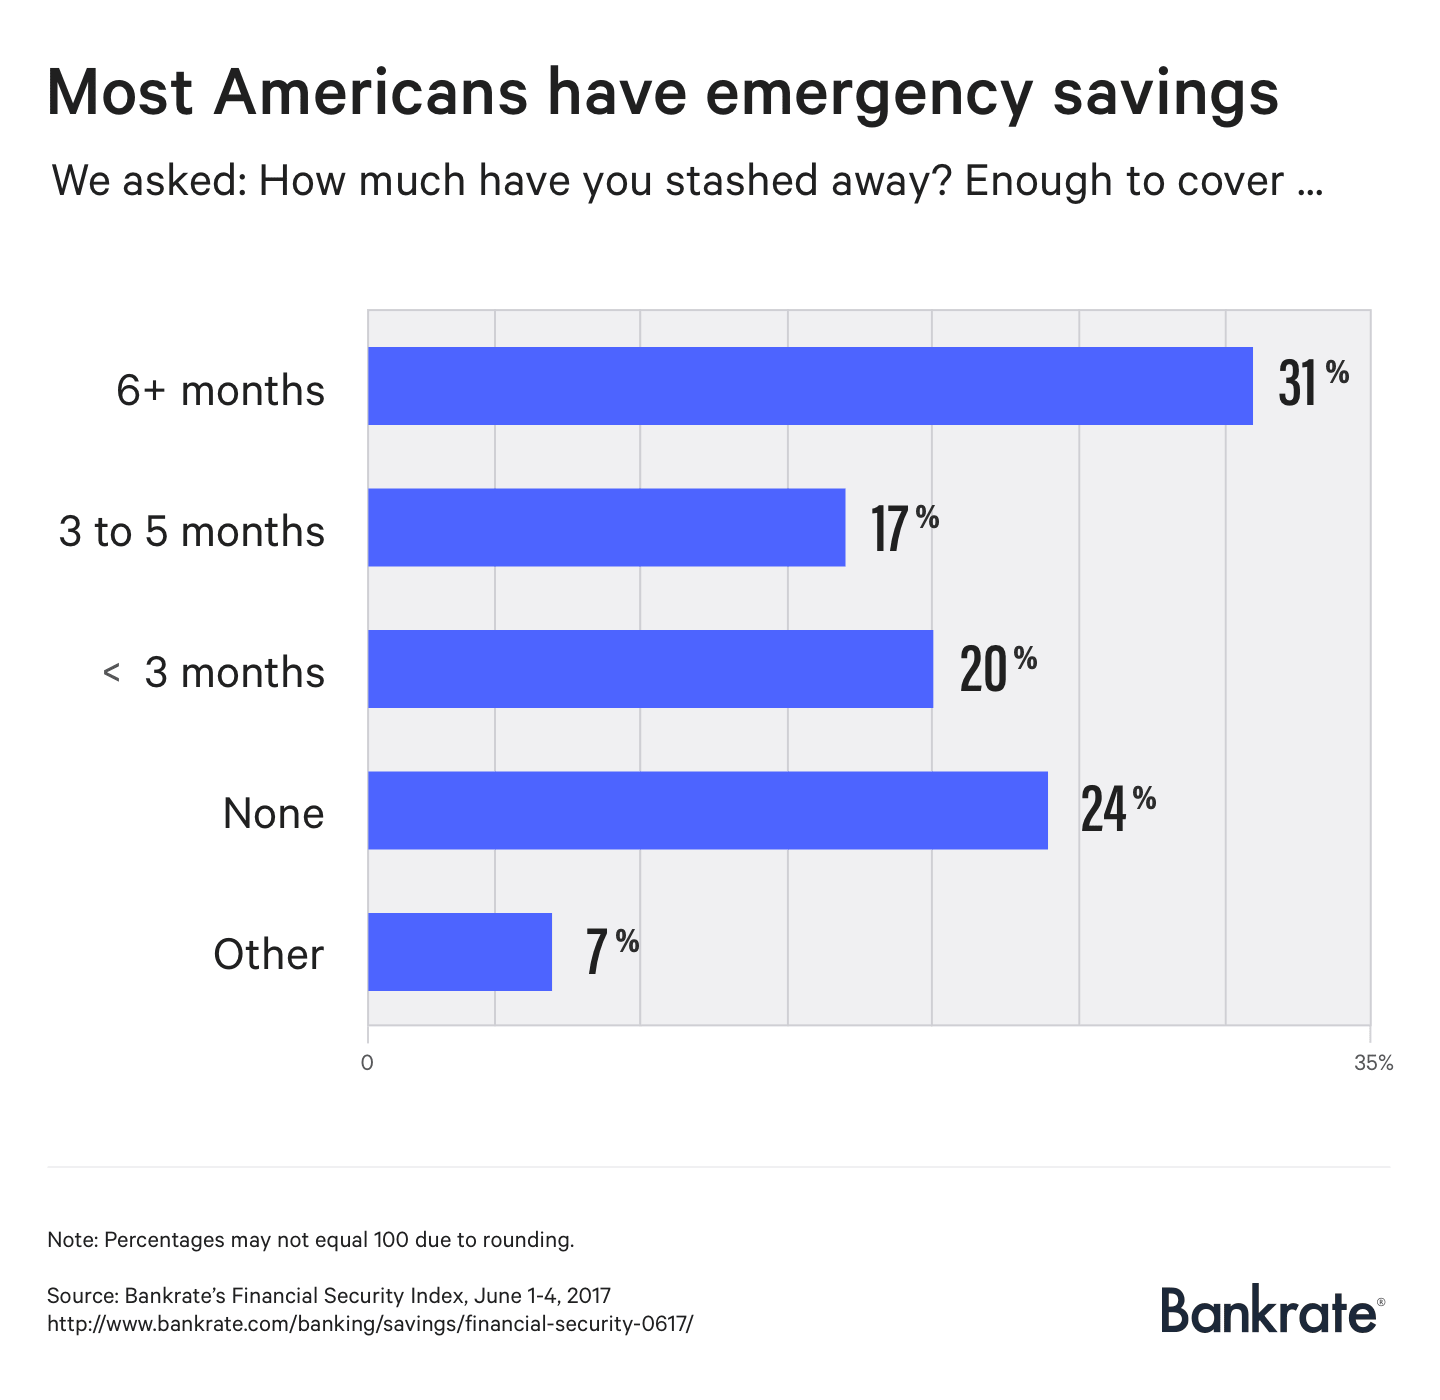 Most Americans have emergency savings